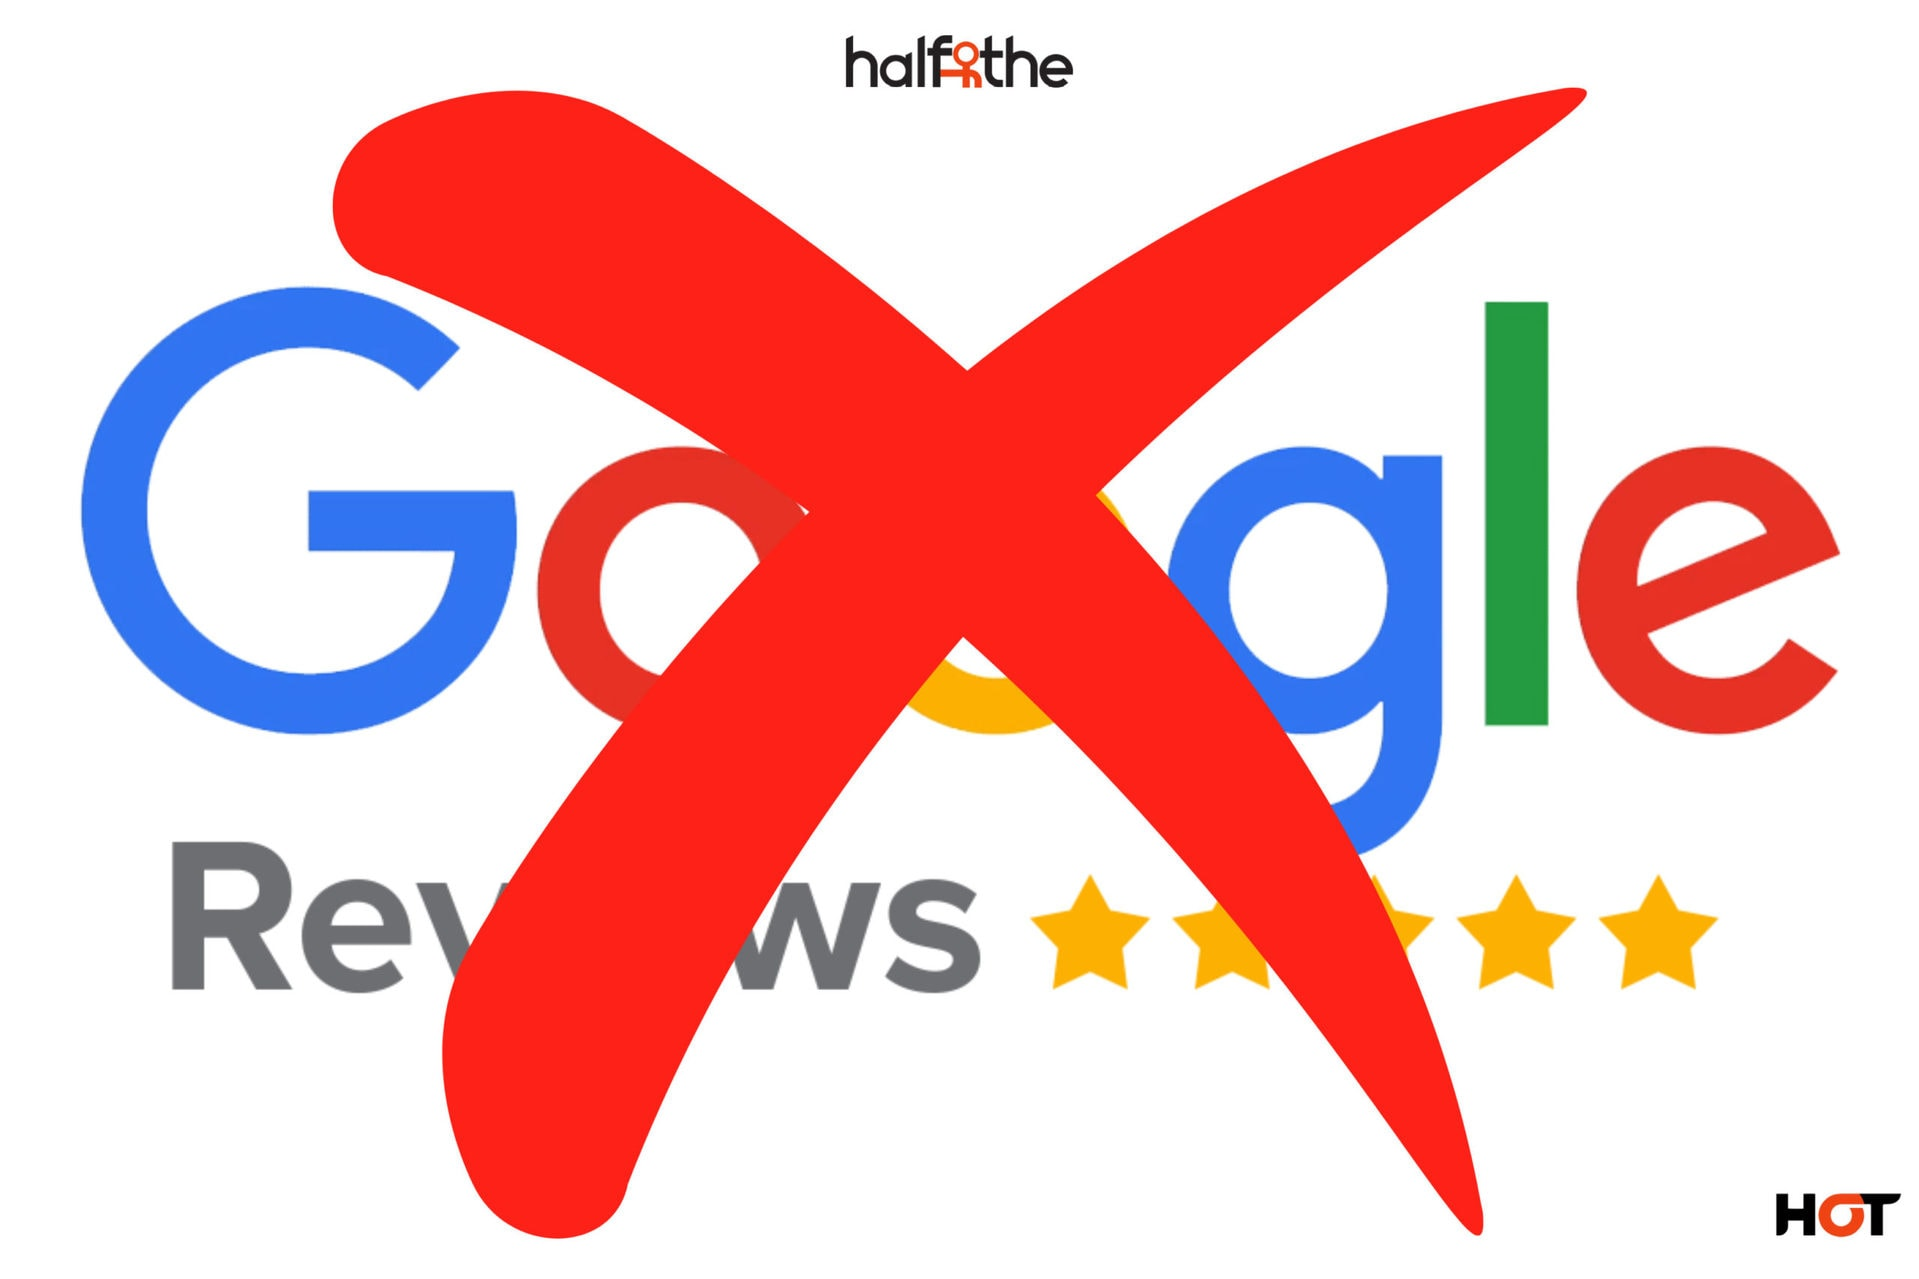 How to delete a Google review? Step-by-step guide